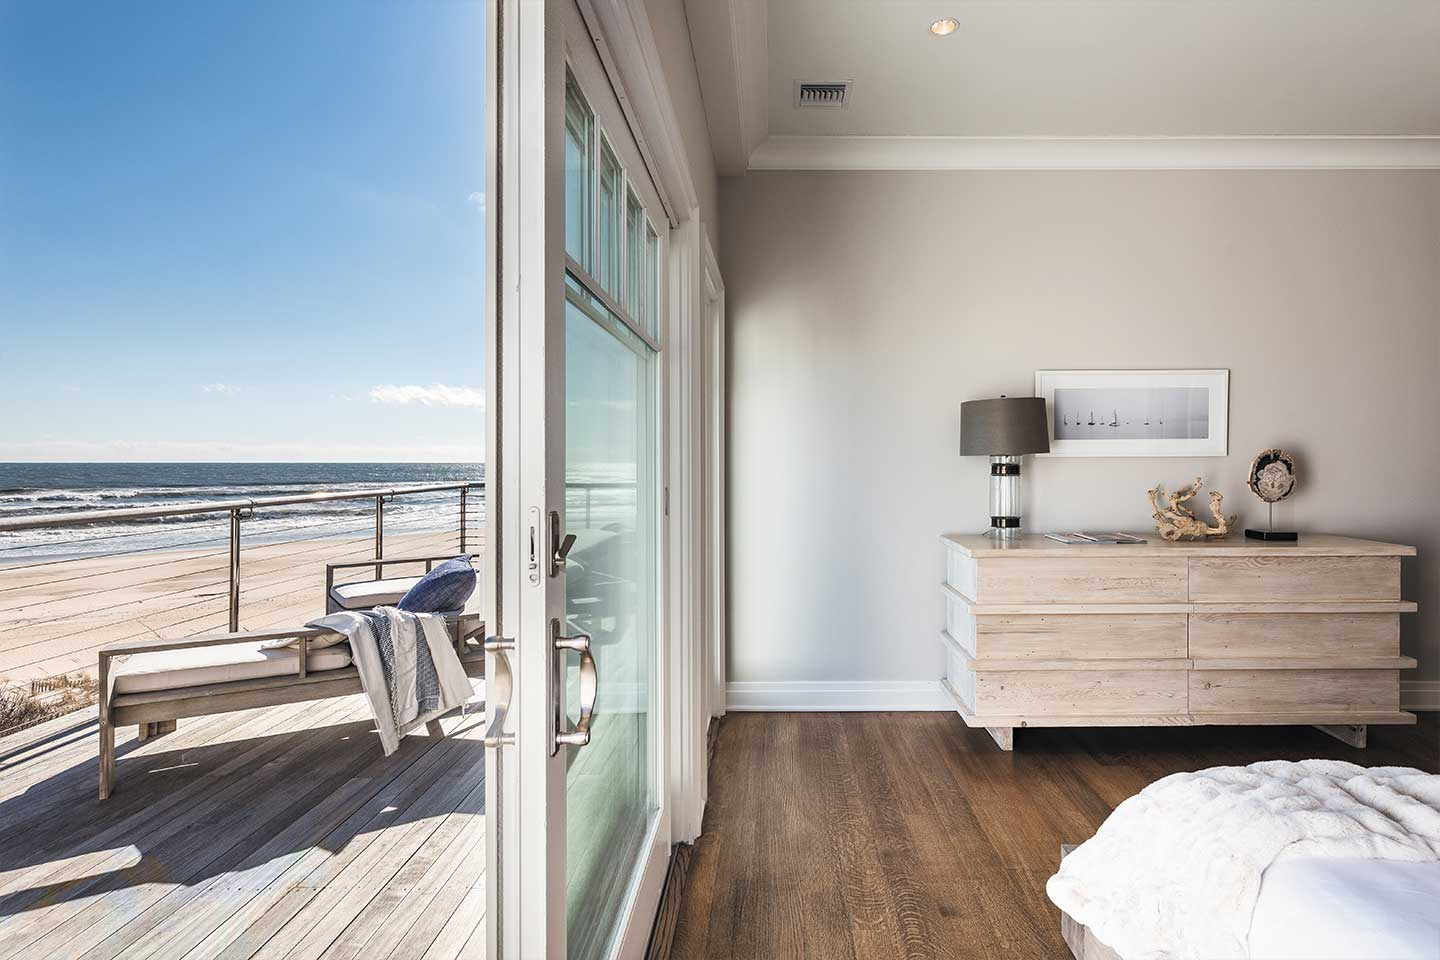 Bedroom and the deck with a ocean view